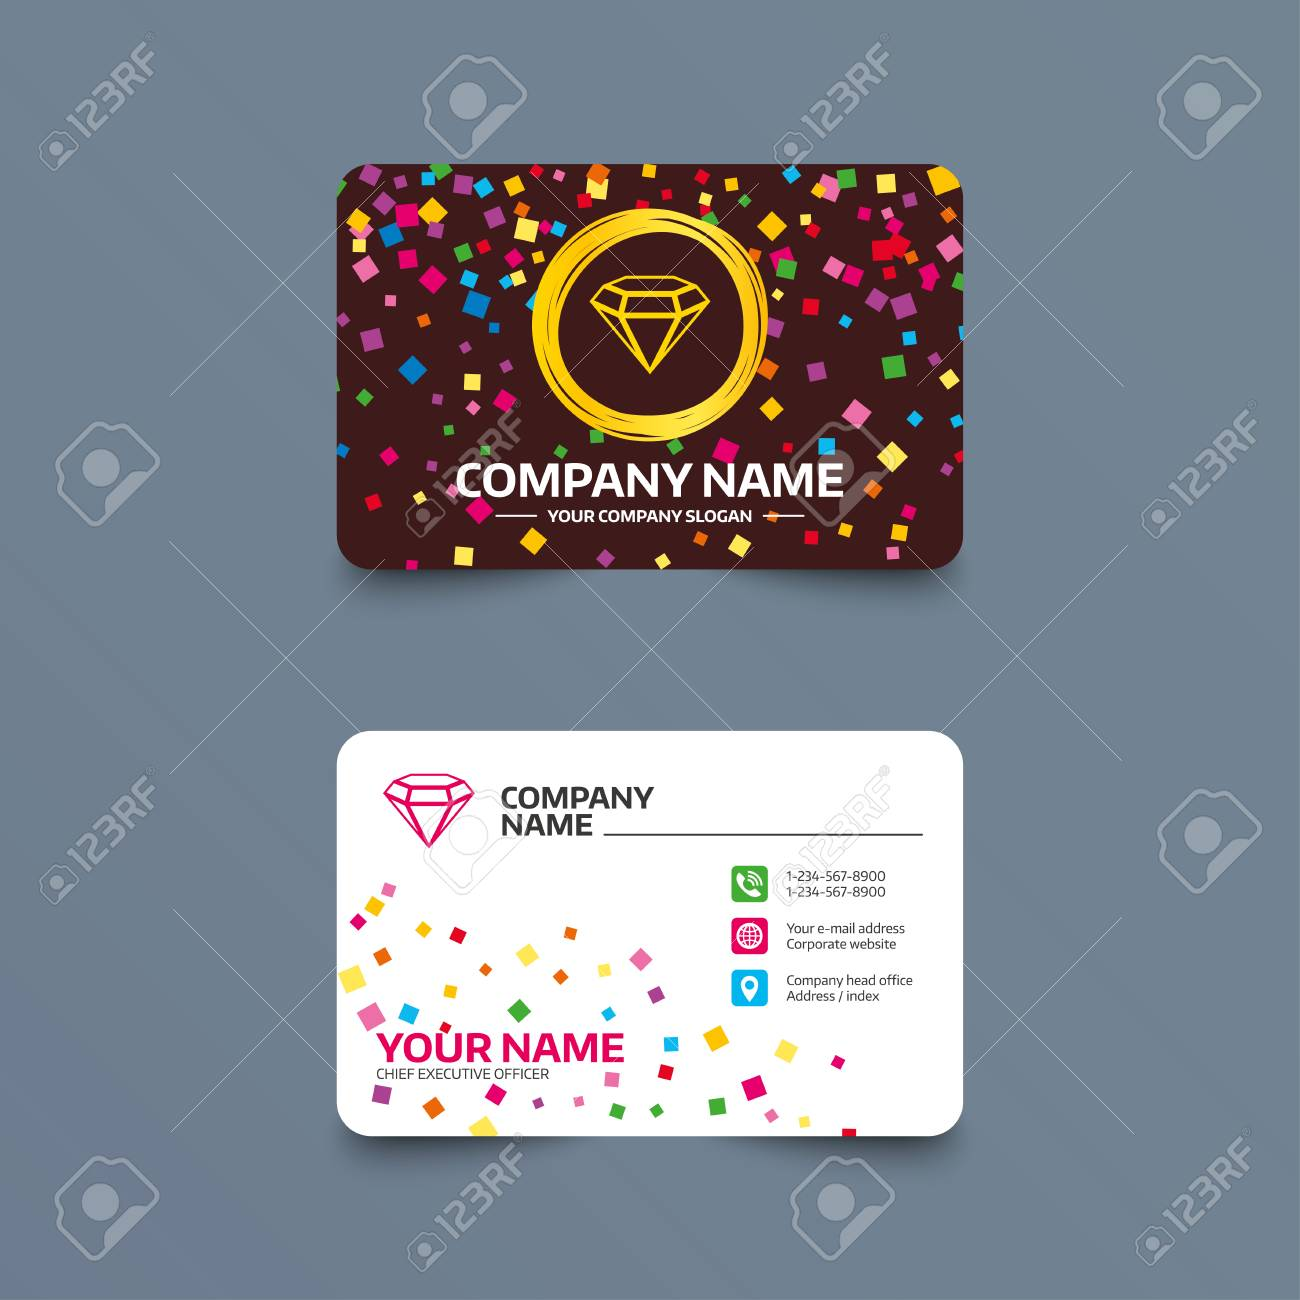 Business Card Template With Confetti Pieces Diamond Sign Icon - Jewelry business cards templates free